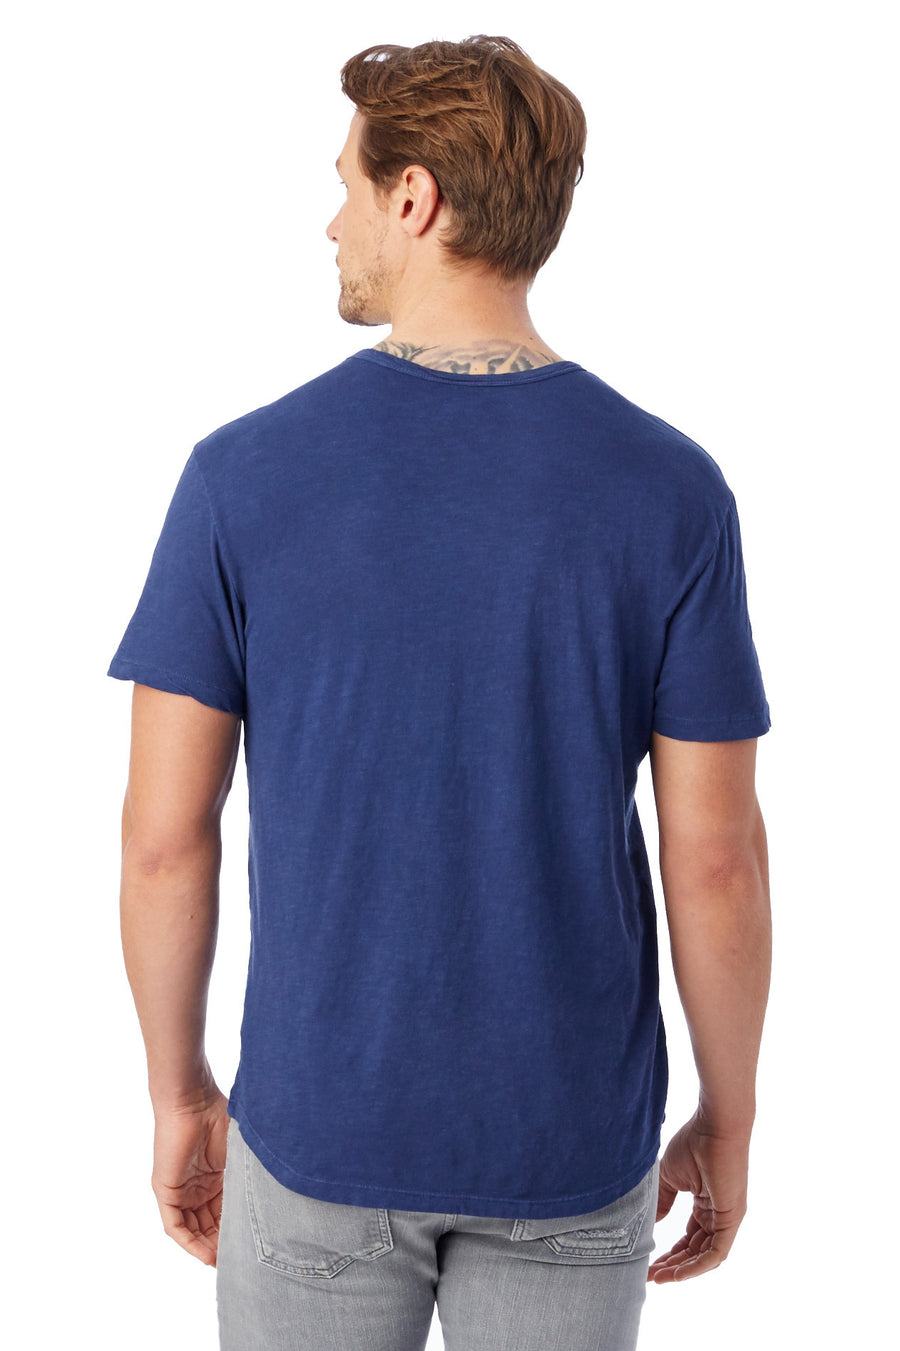 Postgame Washed Slub Crew T-Shirt - Midnight